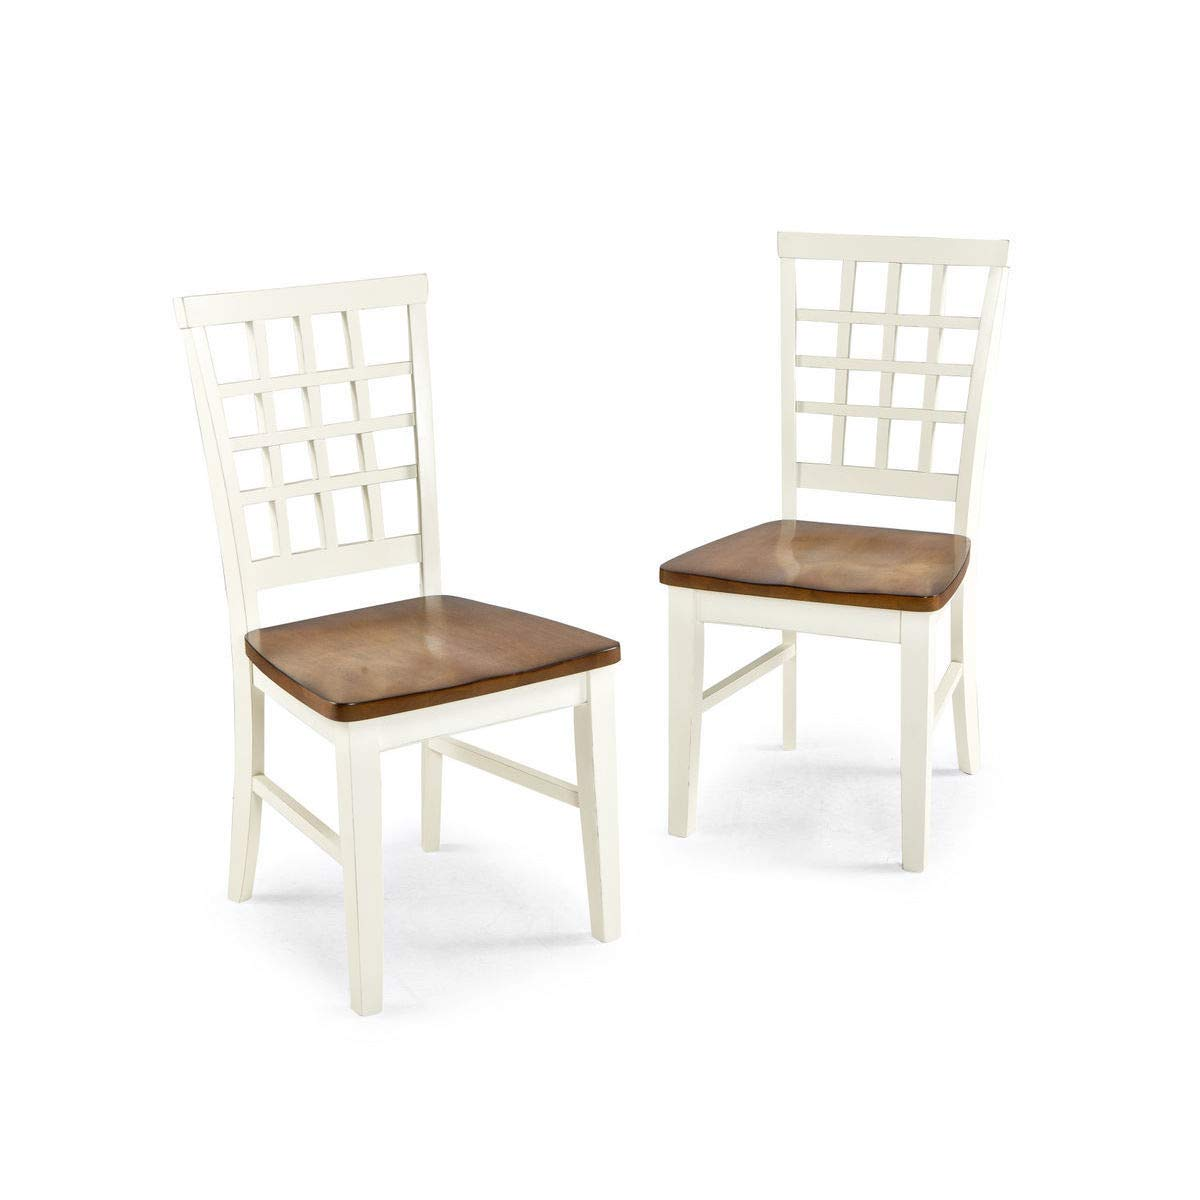 Add Charm Living Room Sets Casual Larry Lattice Back and Wood Seat Dining Chair-Dining Chair  Constructed with A Wooden Seat and A Two Tone Finish- Add Charm to Your Dining  and Living ...